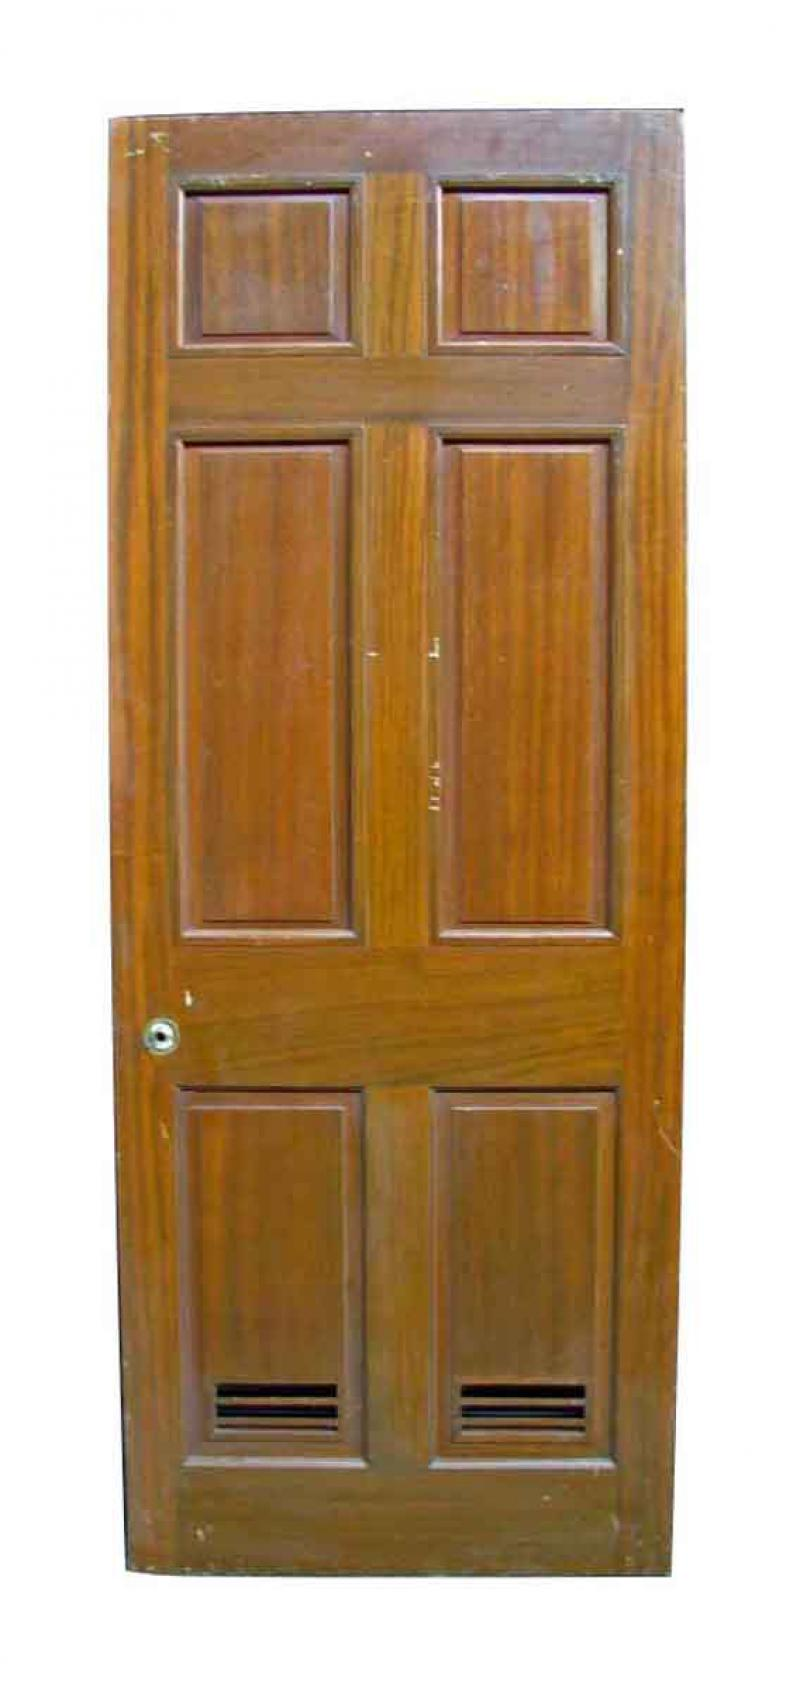 j reclaimed antique mahogany veneer door standard doors veneer wardrobe door designs flush door designs with veneer veneer door.html